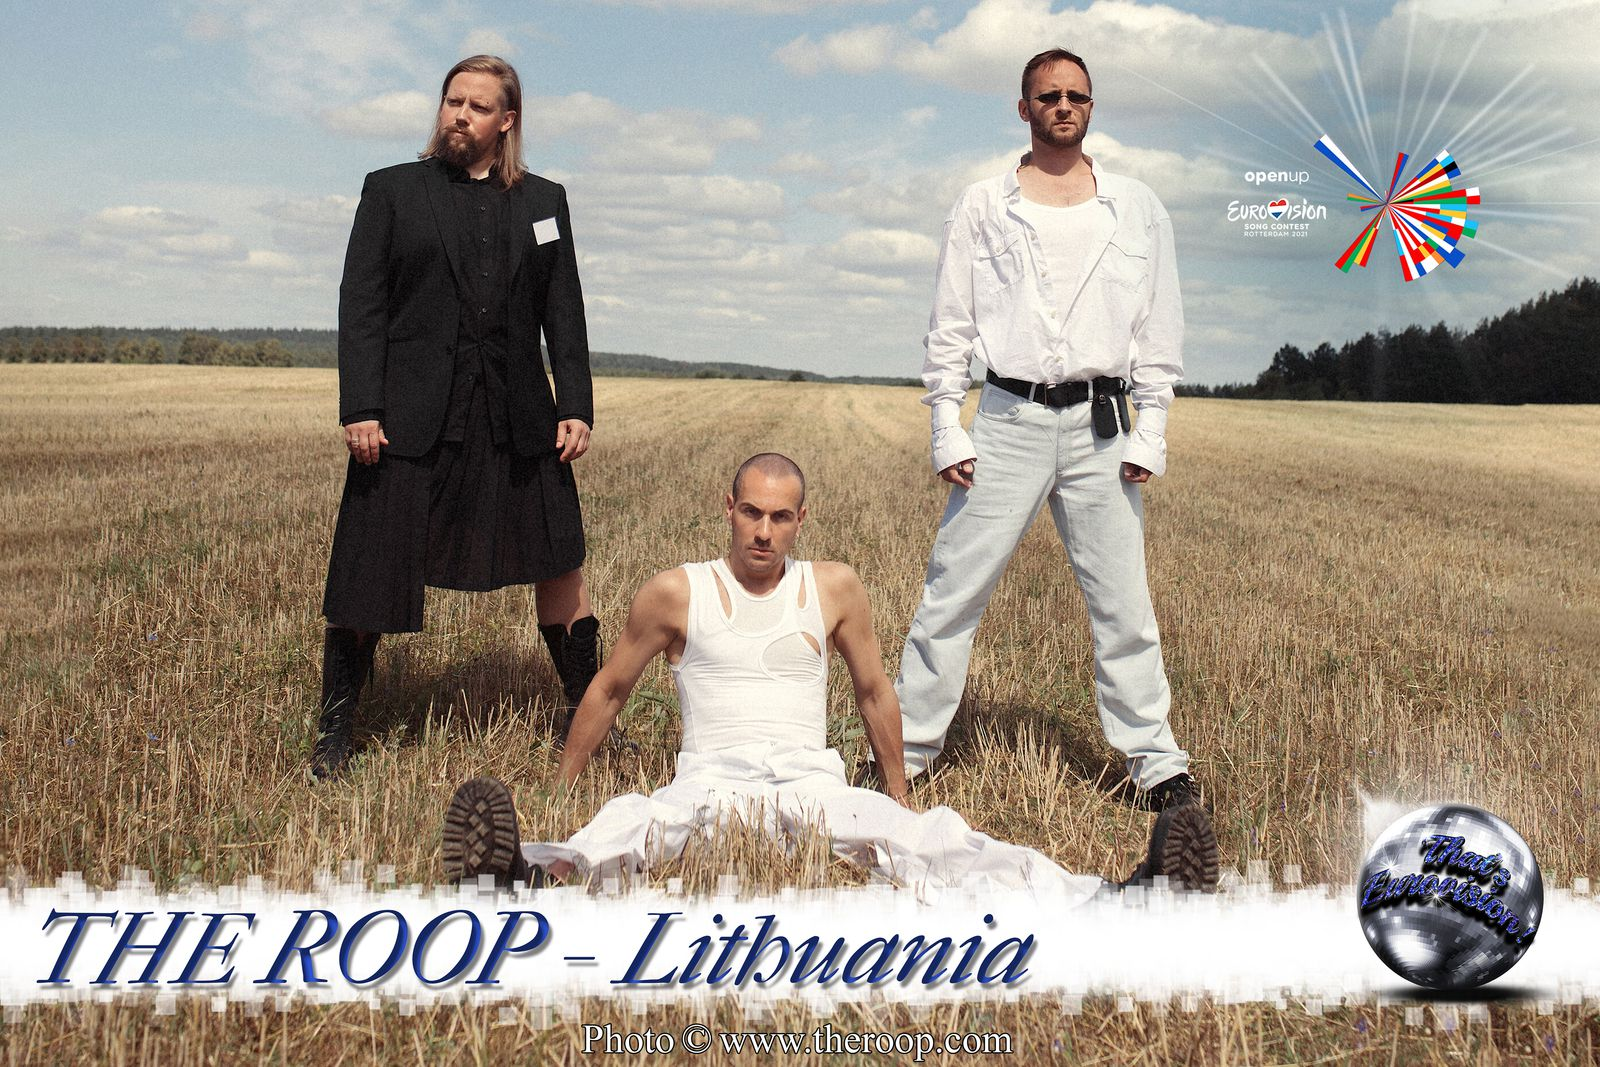 Lithuania 2021 - The ROOP (Discoteque)